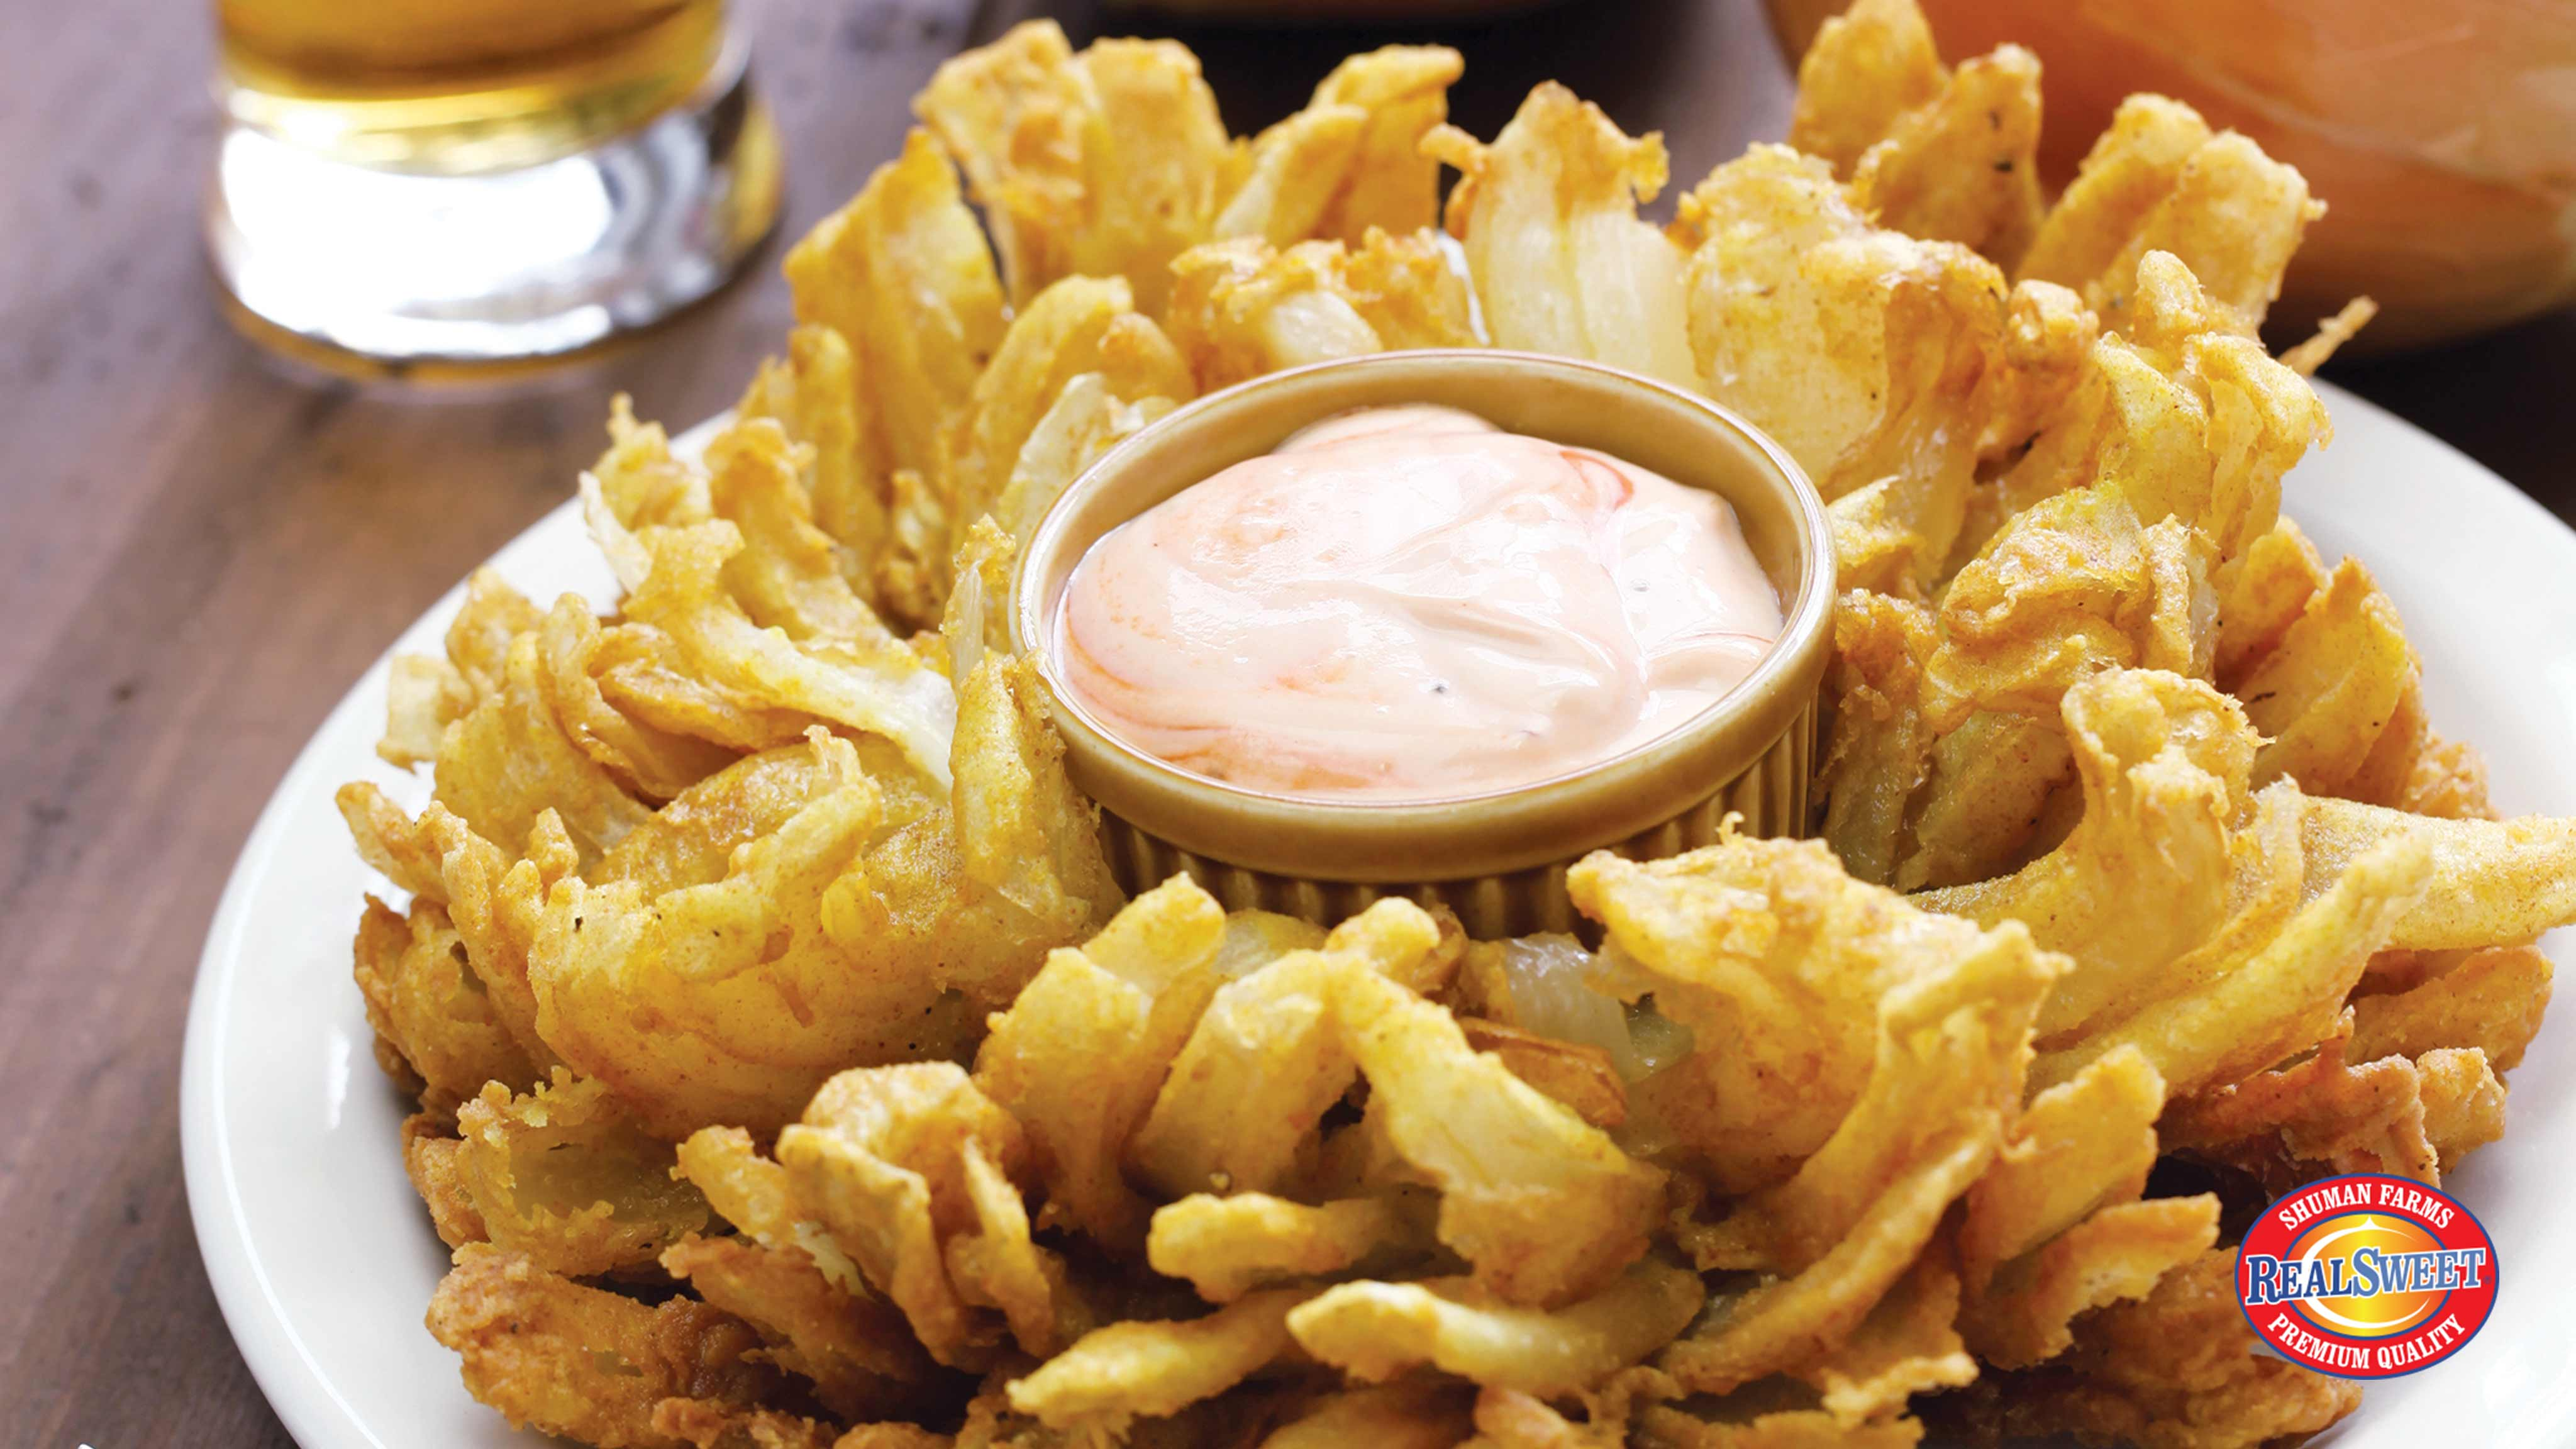 Image for Recipe Steakhouse Style Bloomin' Sweet Onion